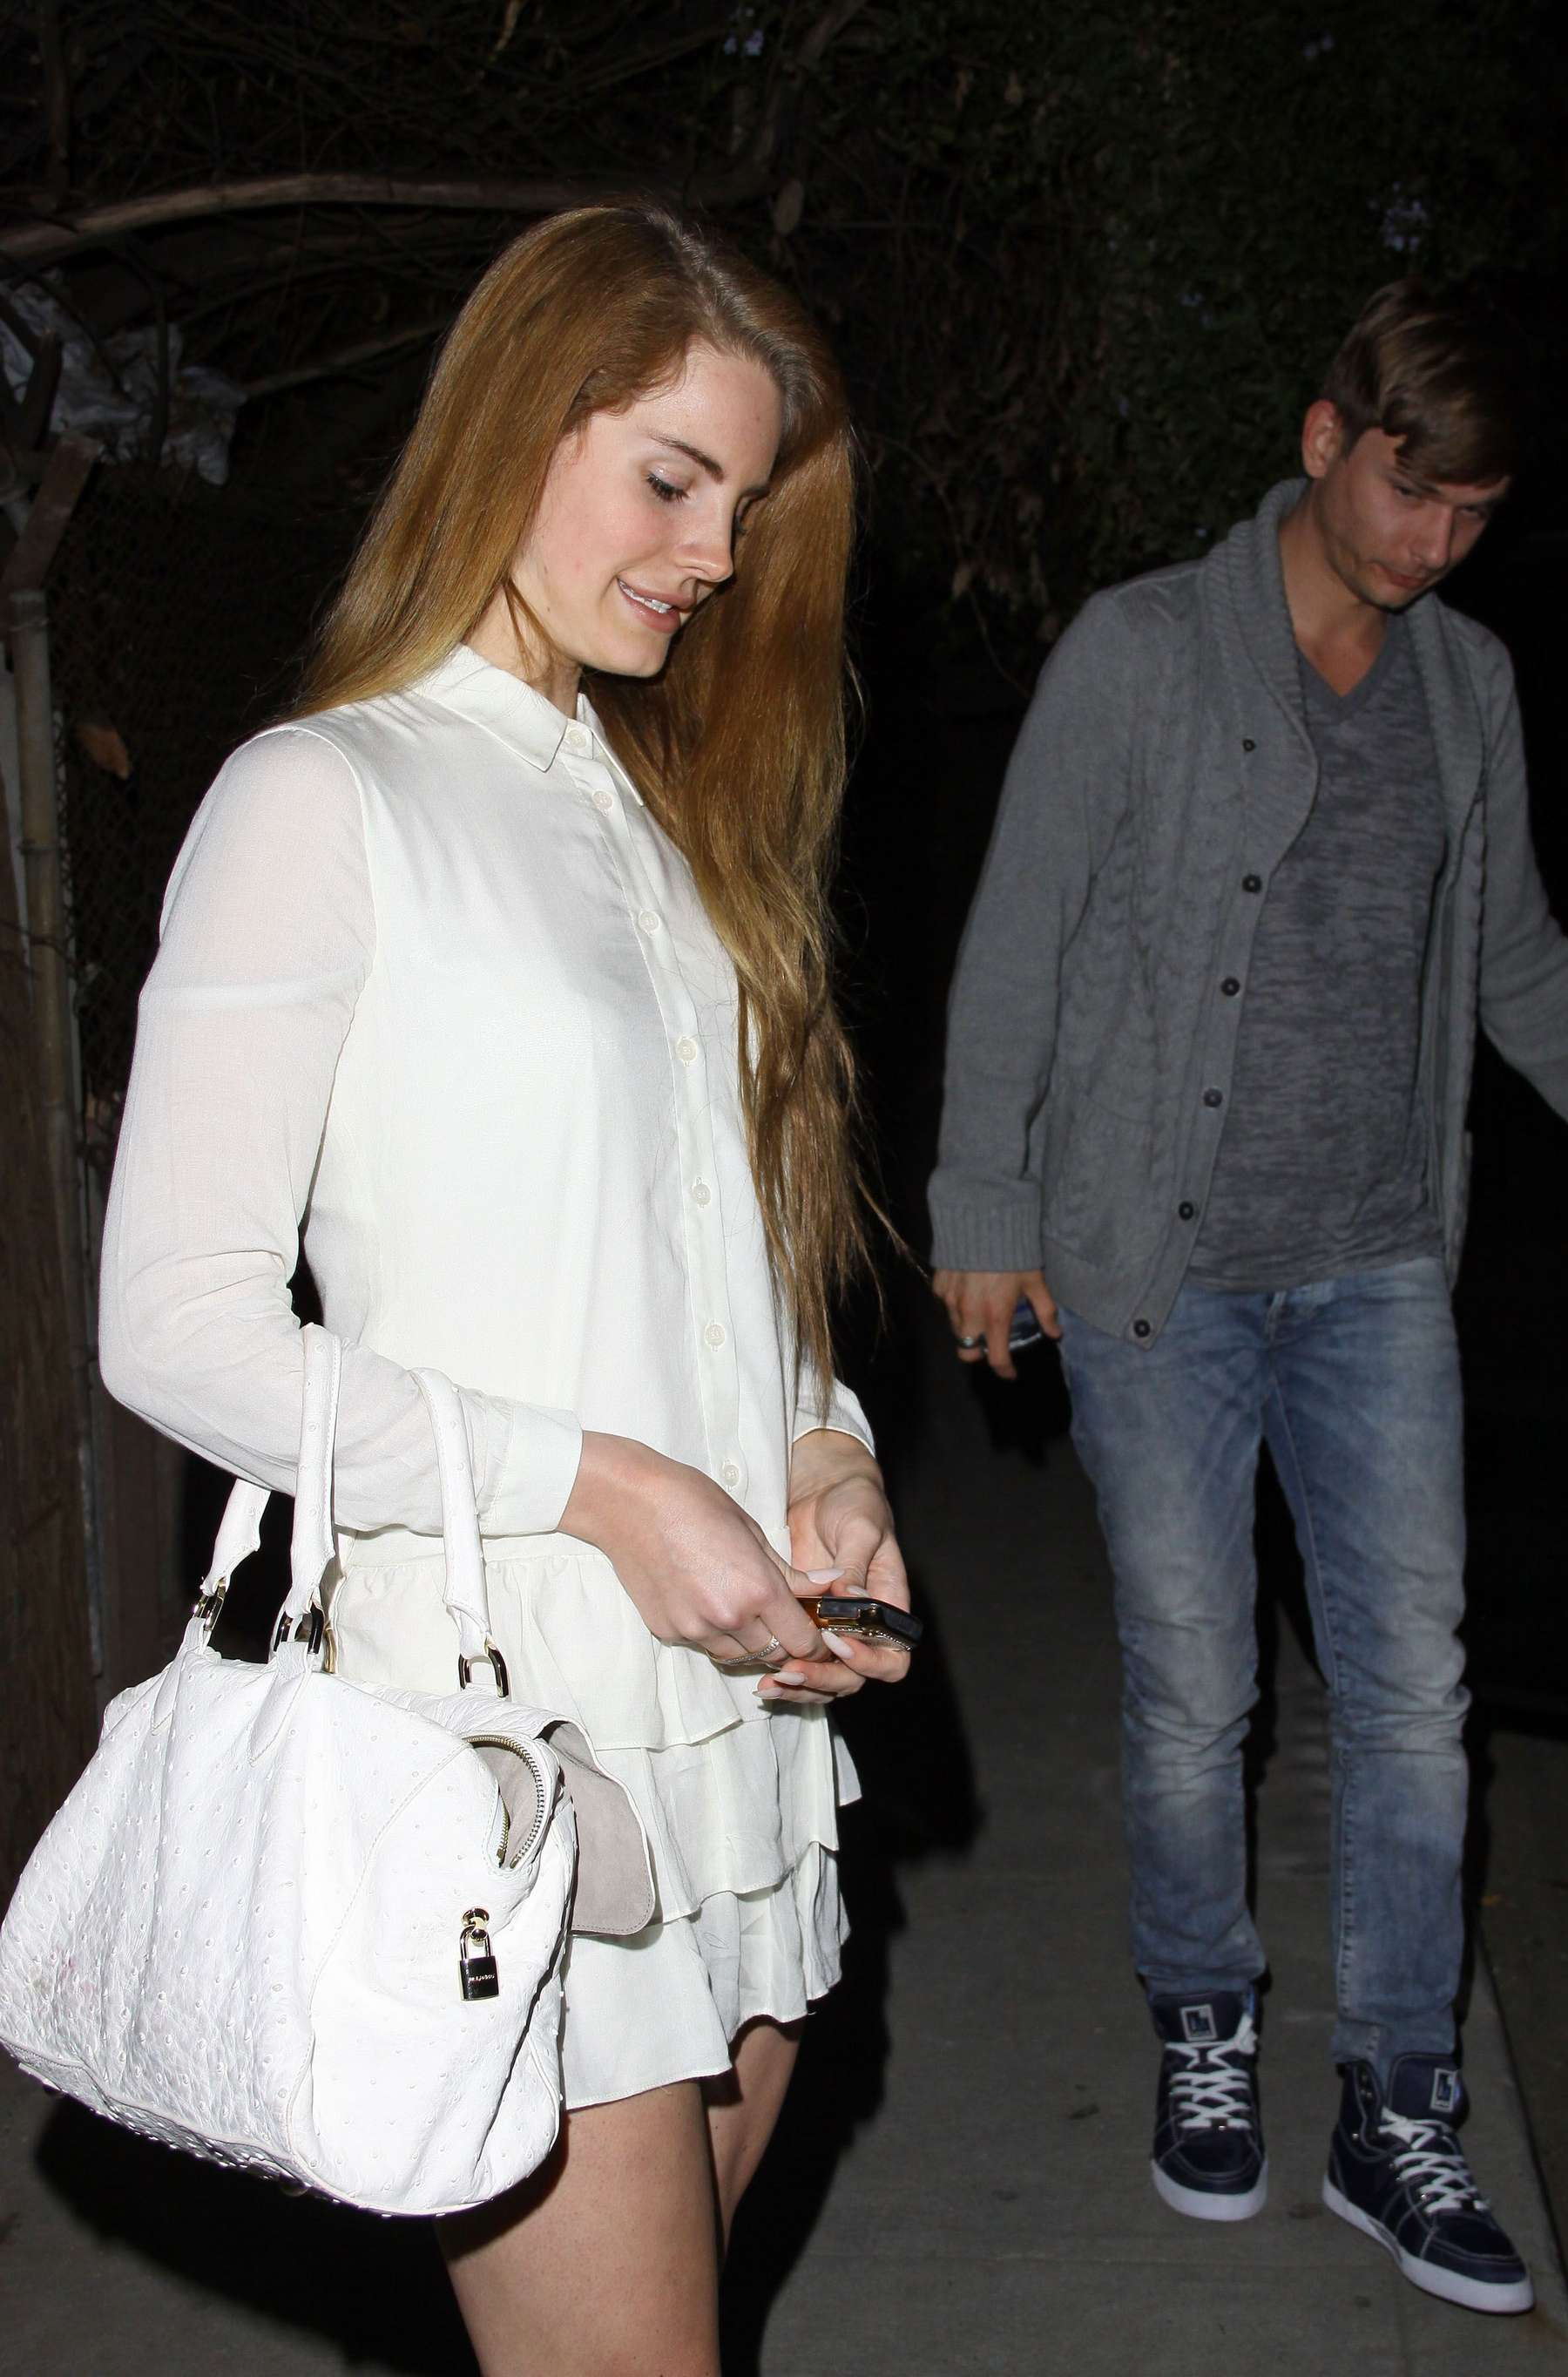 lana del rey legs at the chateau marmont 02 gotceleb